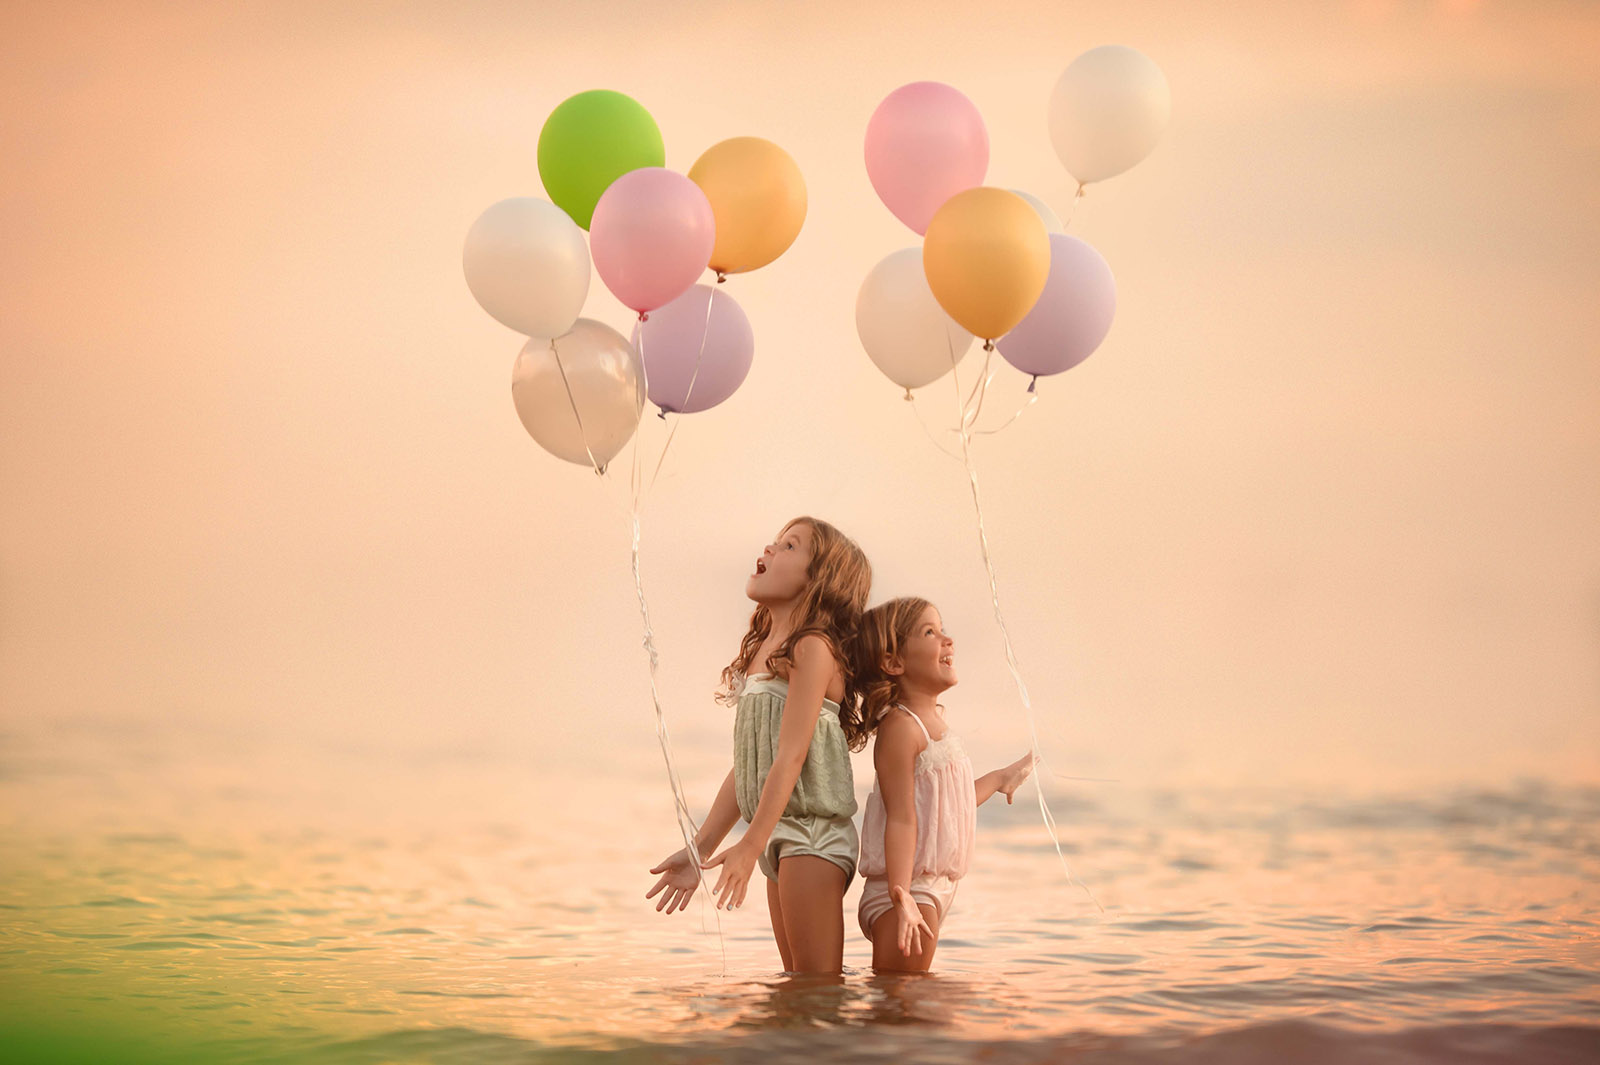 Photo of two girls in the water with balloons by beth wade